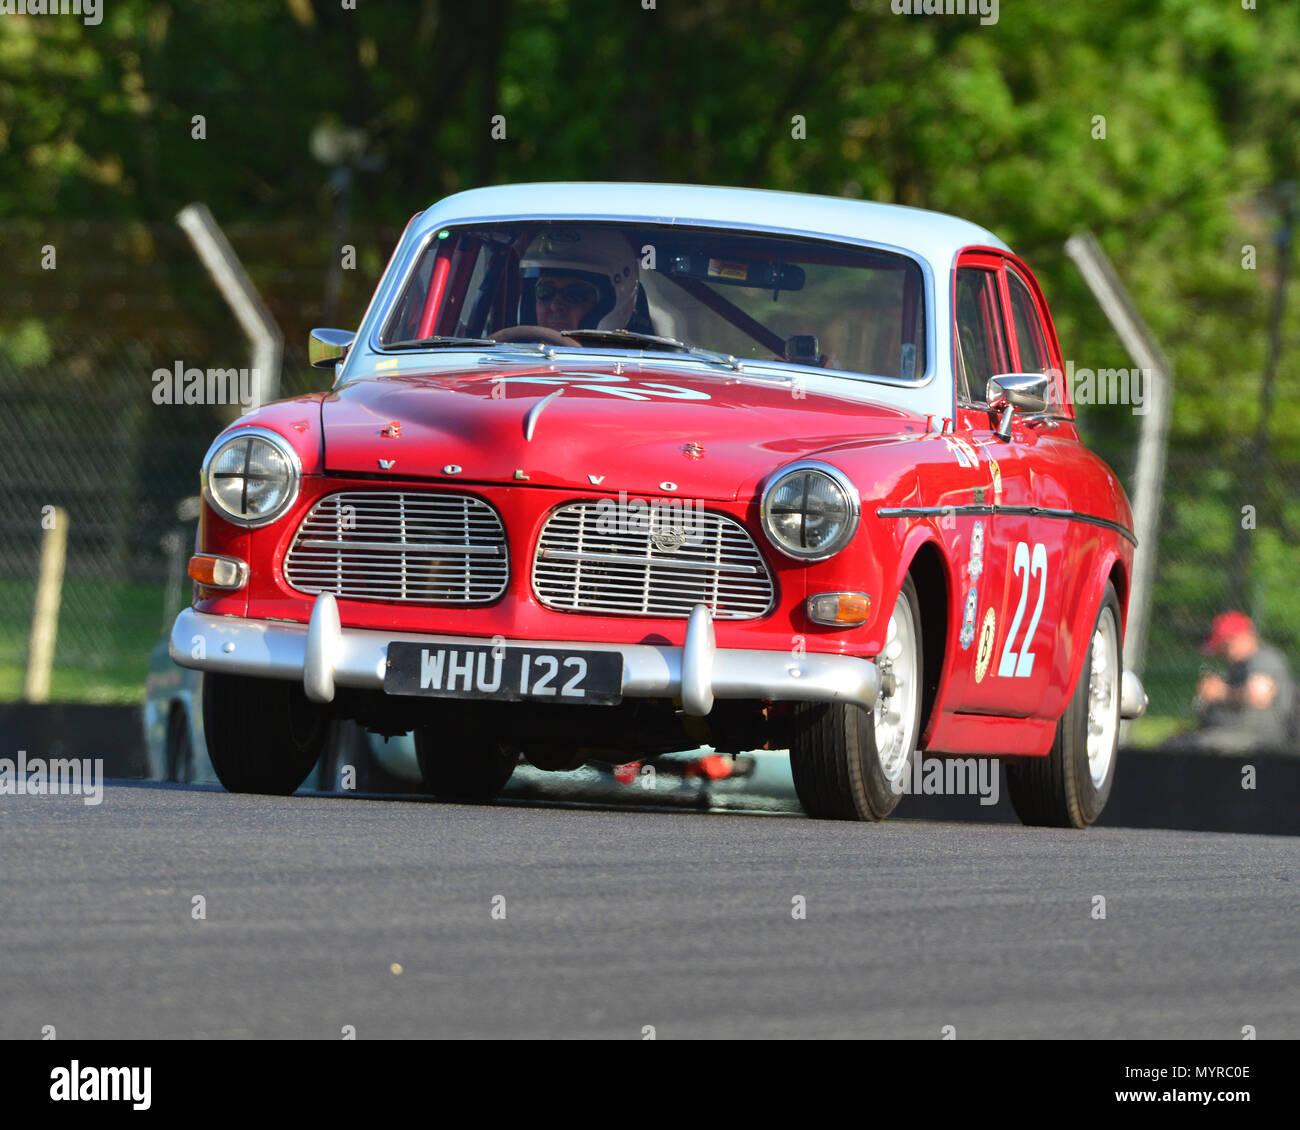 Circuito Touring : David h jones tony shirtcliffe volvo amazon hrdc touring grandi